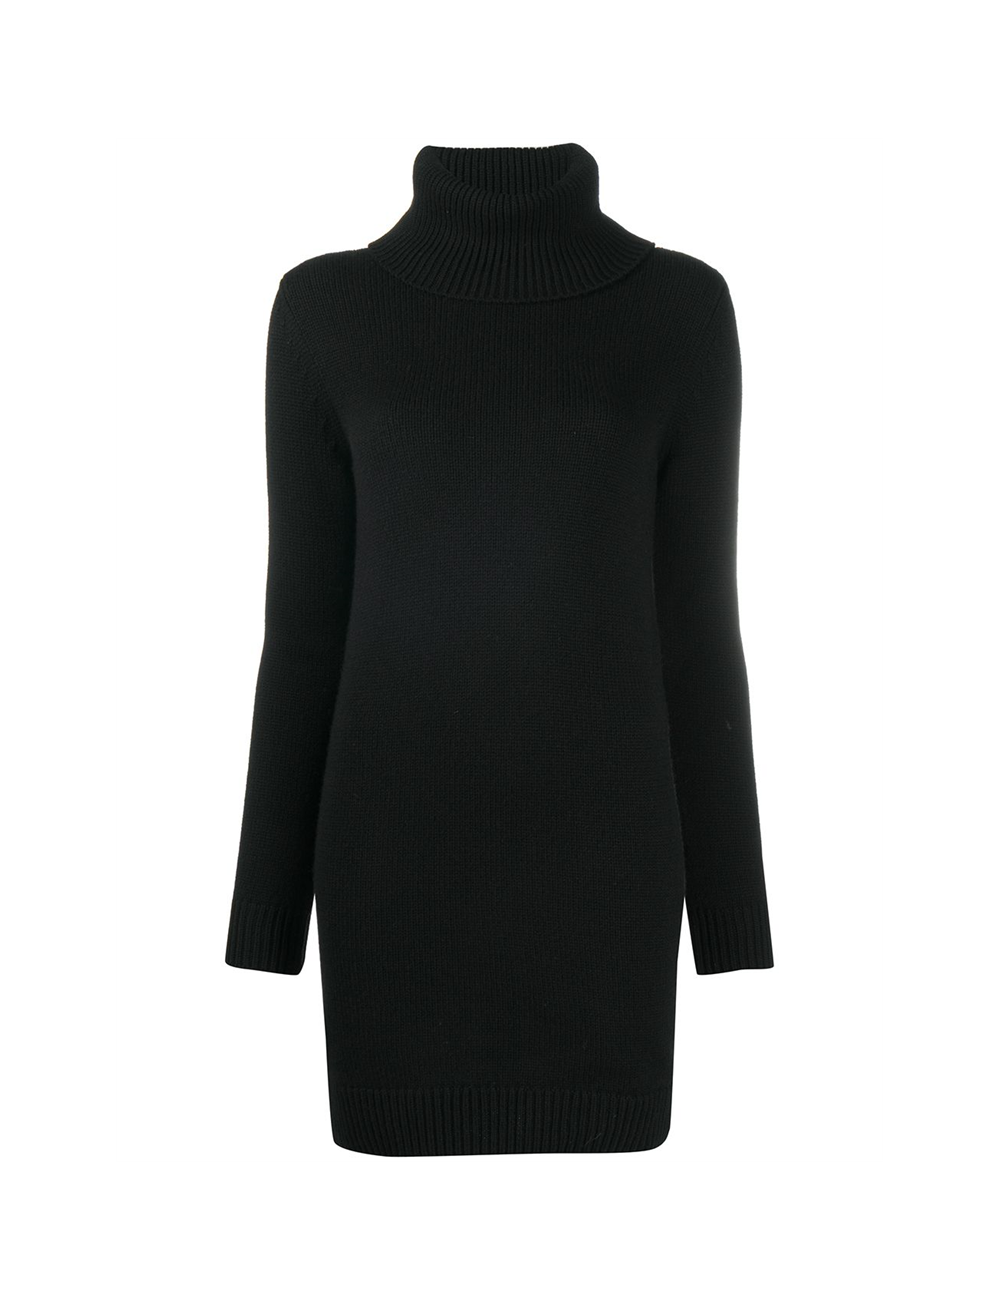 Cashmere sweater dress Saint Laurent - BIG BOSS MEGEVE